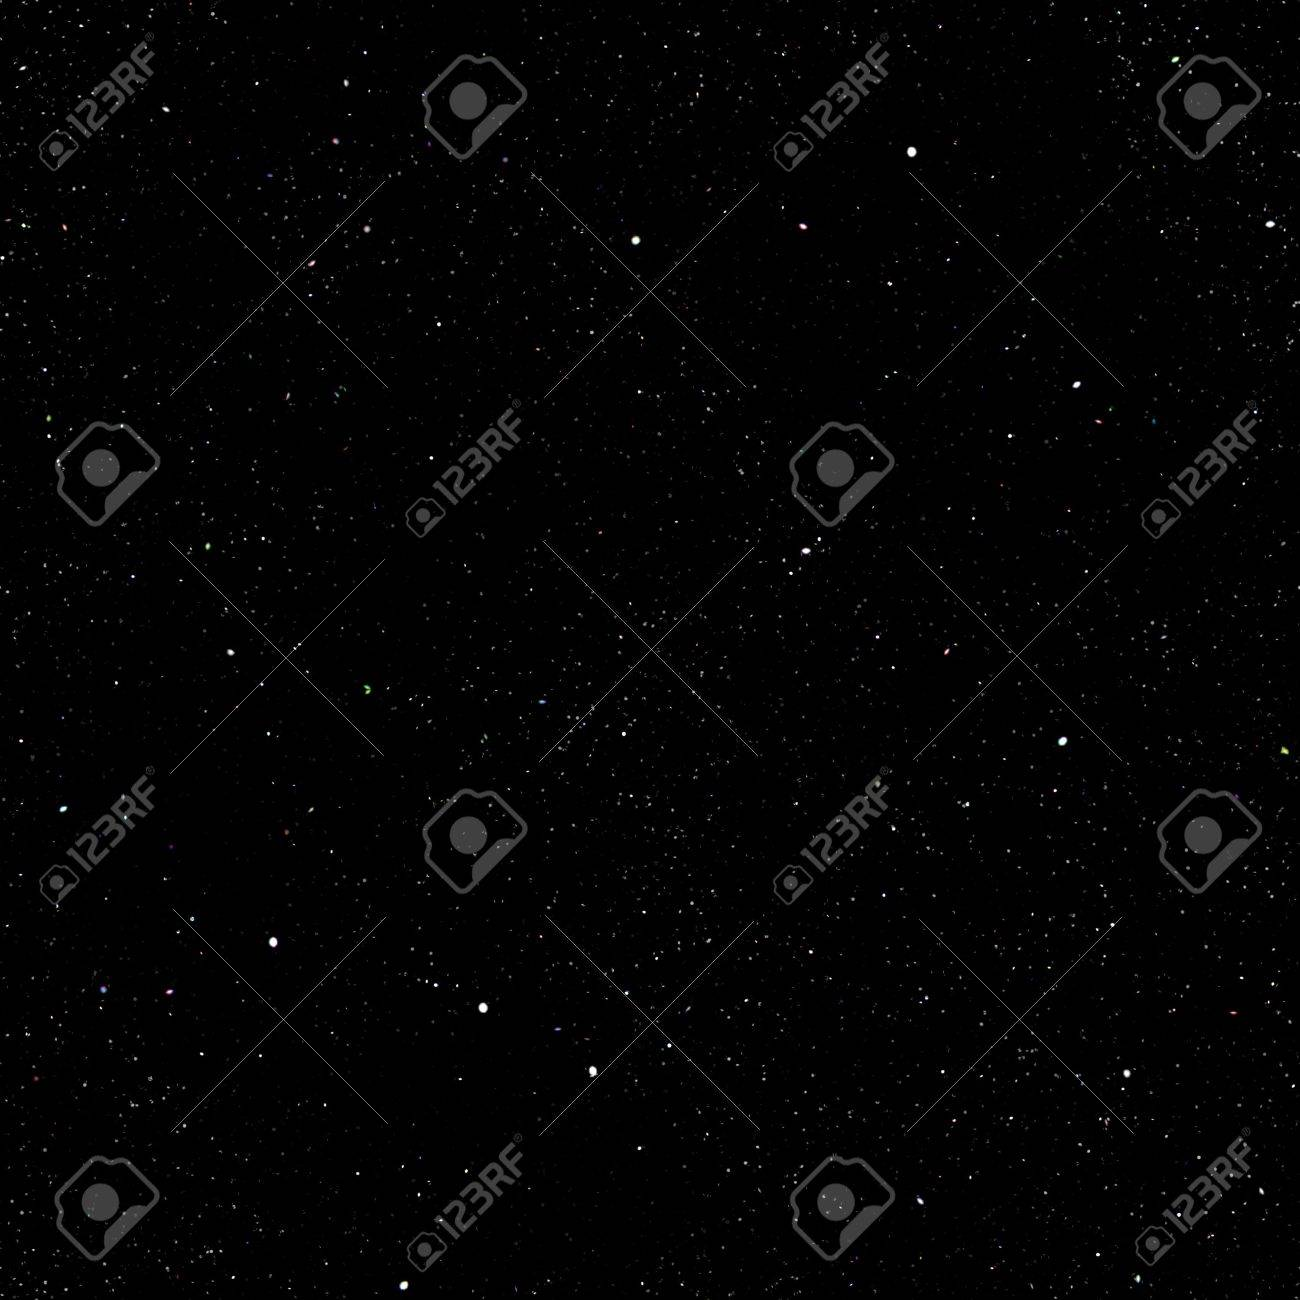 Abstract dark deep space background with stars. Stock Photo - 19938457